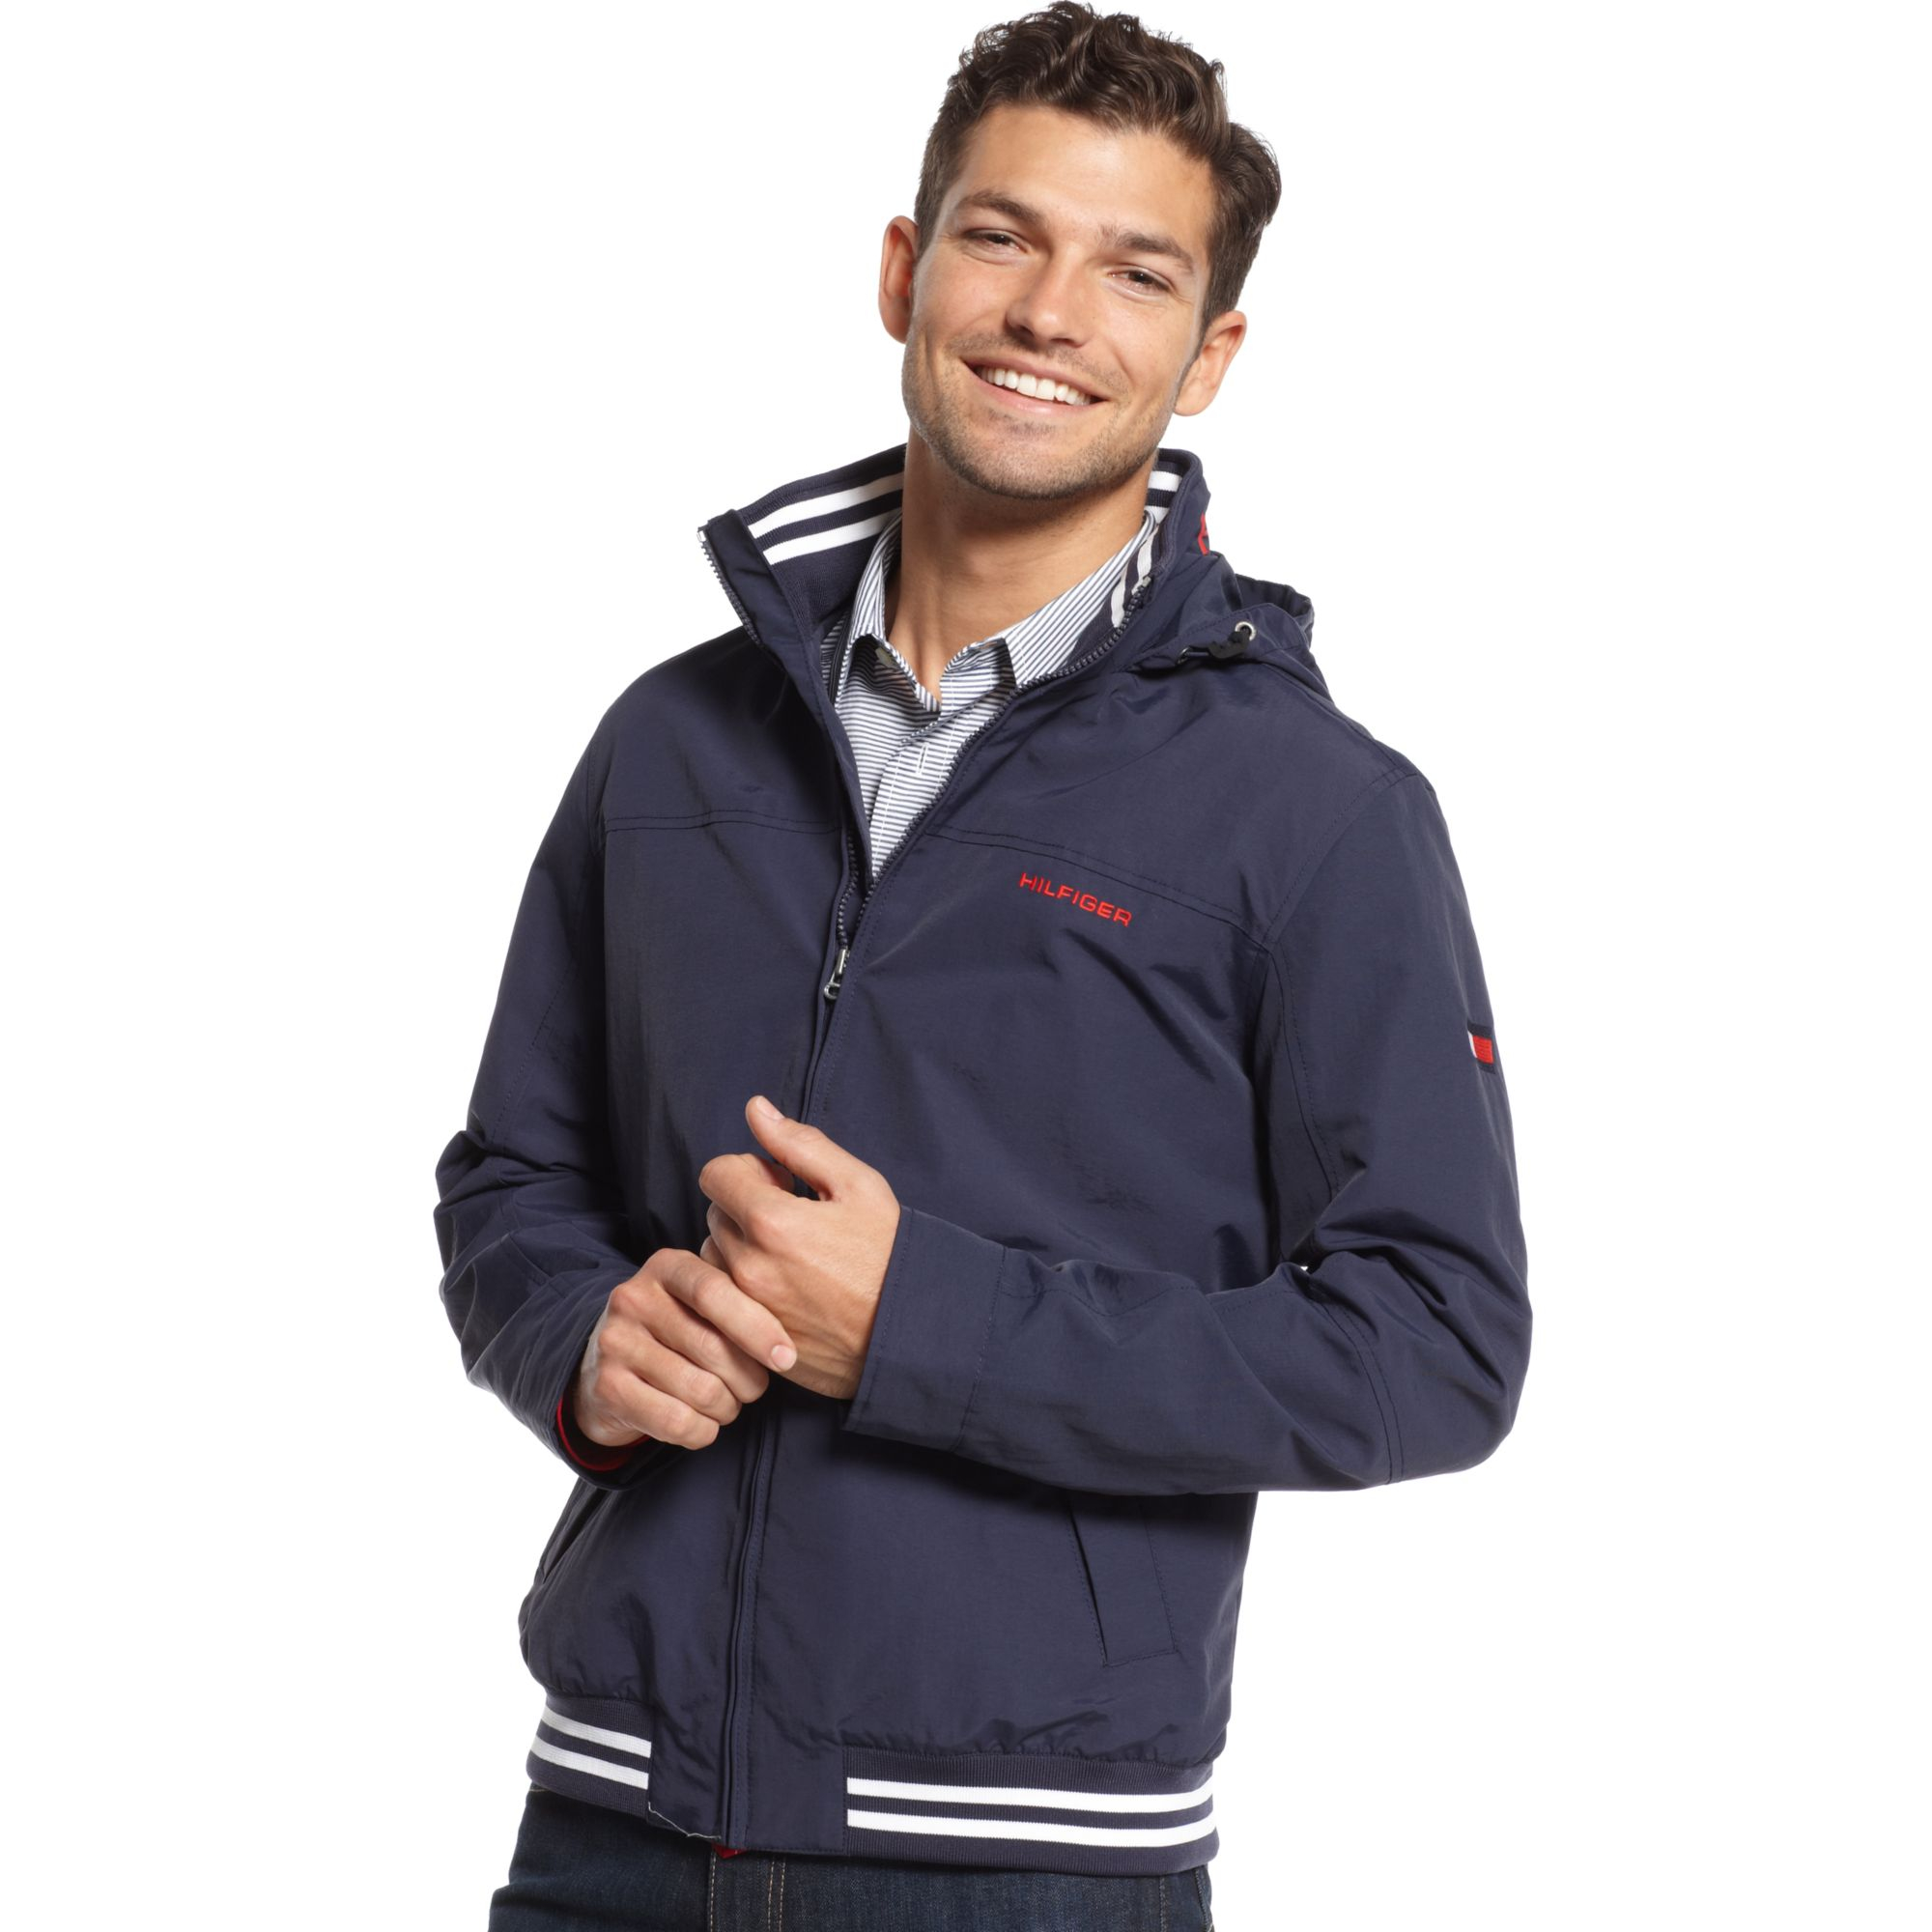 tommy hilfiger core regatta jacket in blue for men sailor. Black Bedroom Furniture Sets. Home Design Ideas